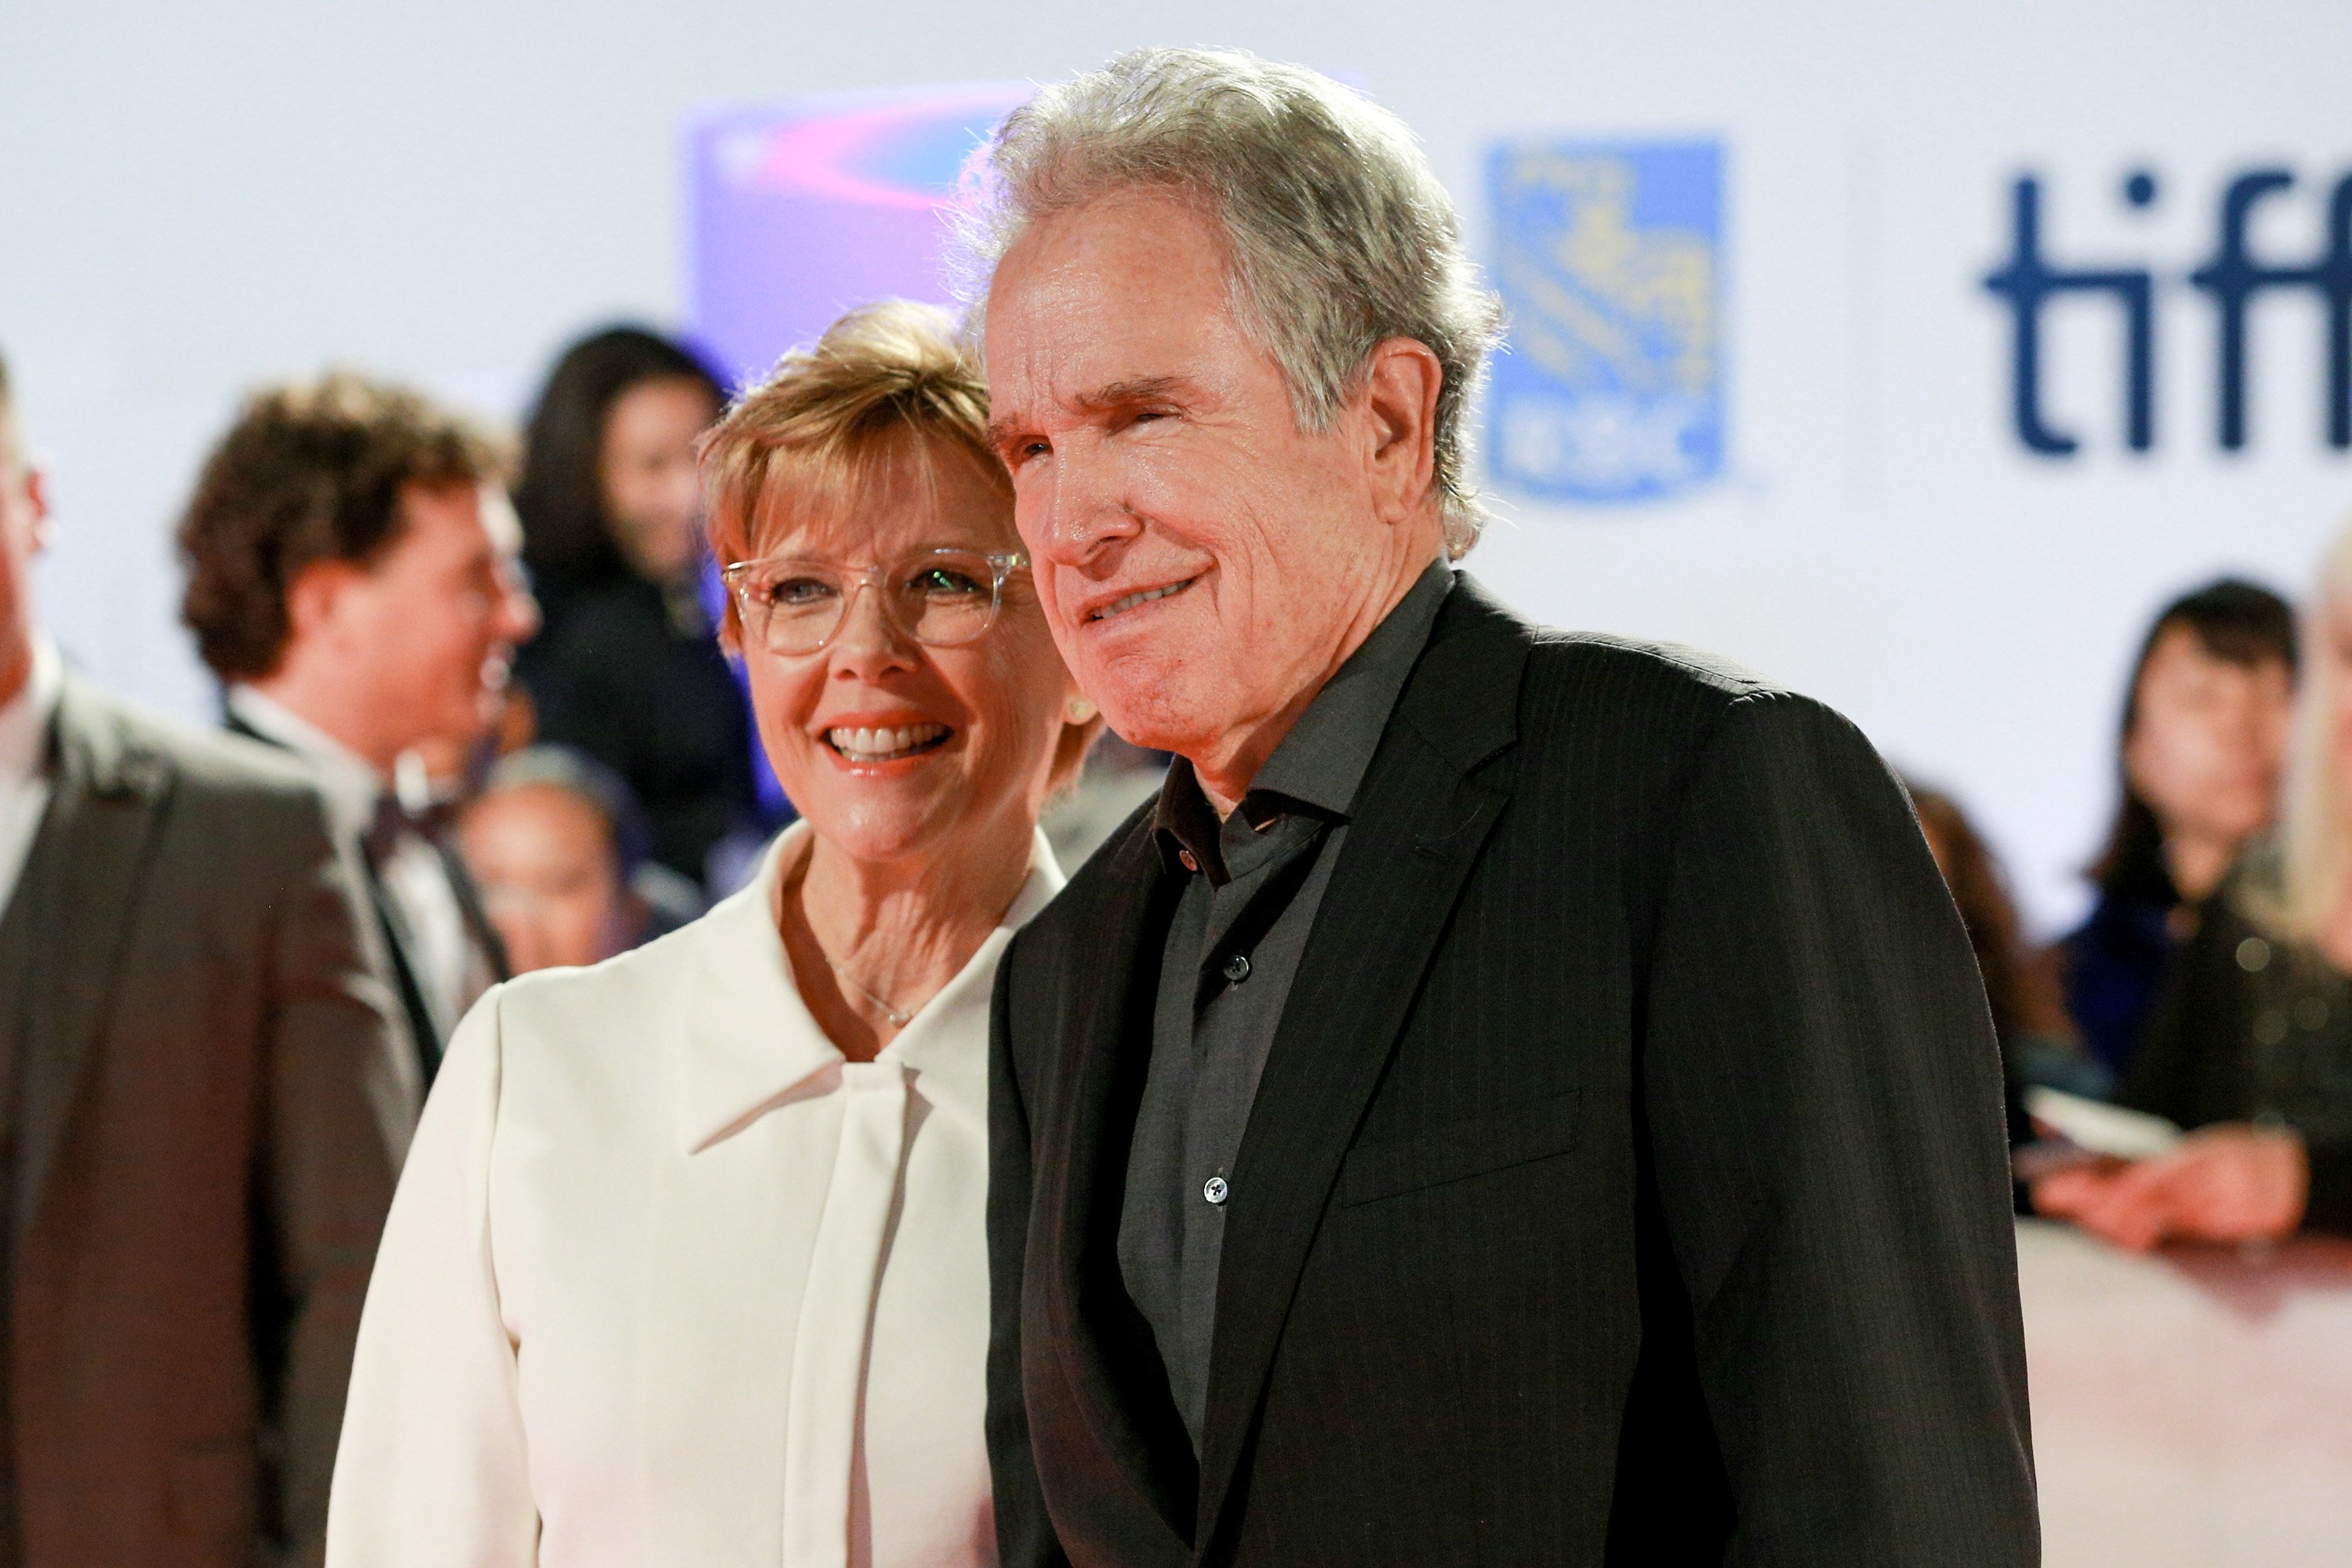 Annette Bening and Warren Beatty attend the 'Film Stars Don't Die in Liverpool' premiere on September 12, 2017 in Toronto, Canada. | Source: Getty Images.